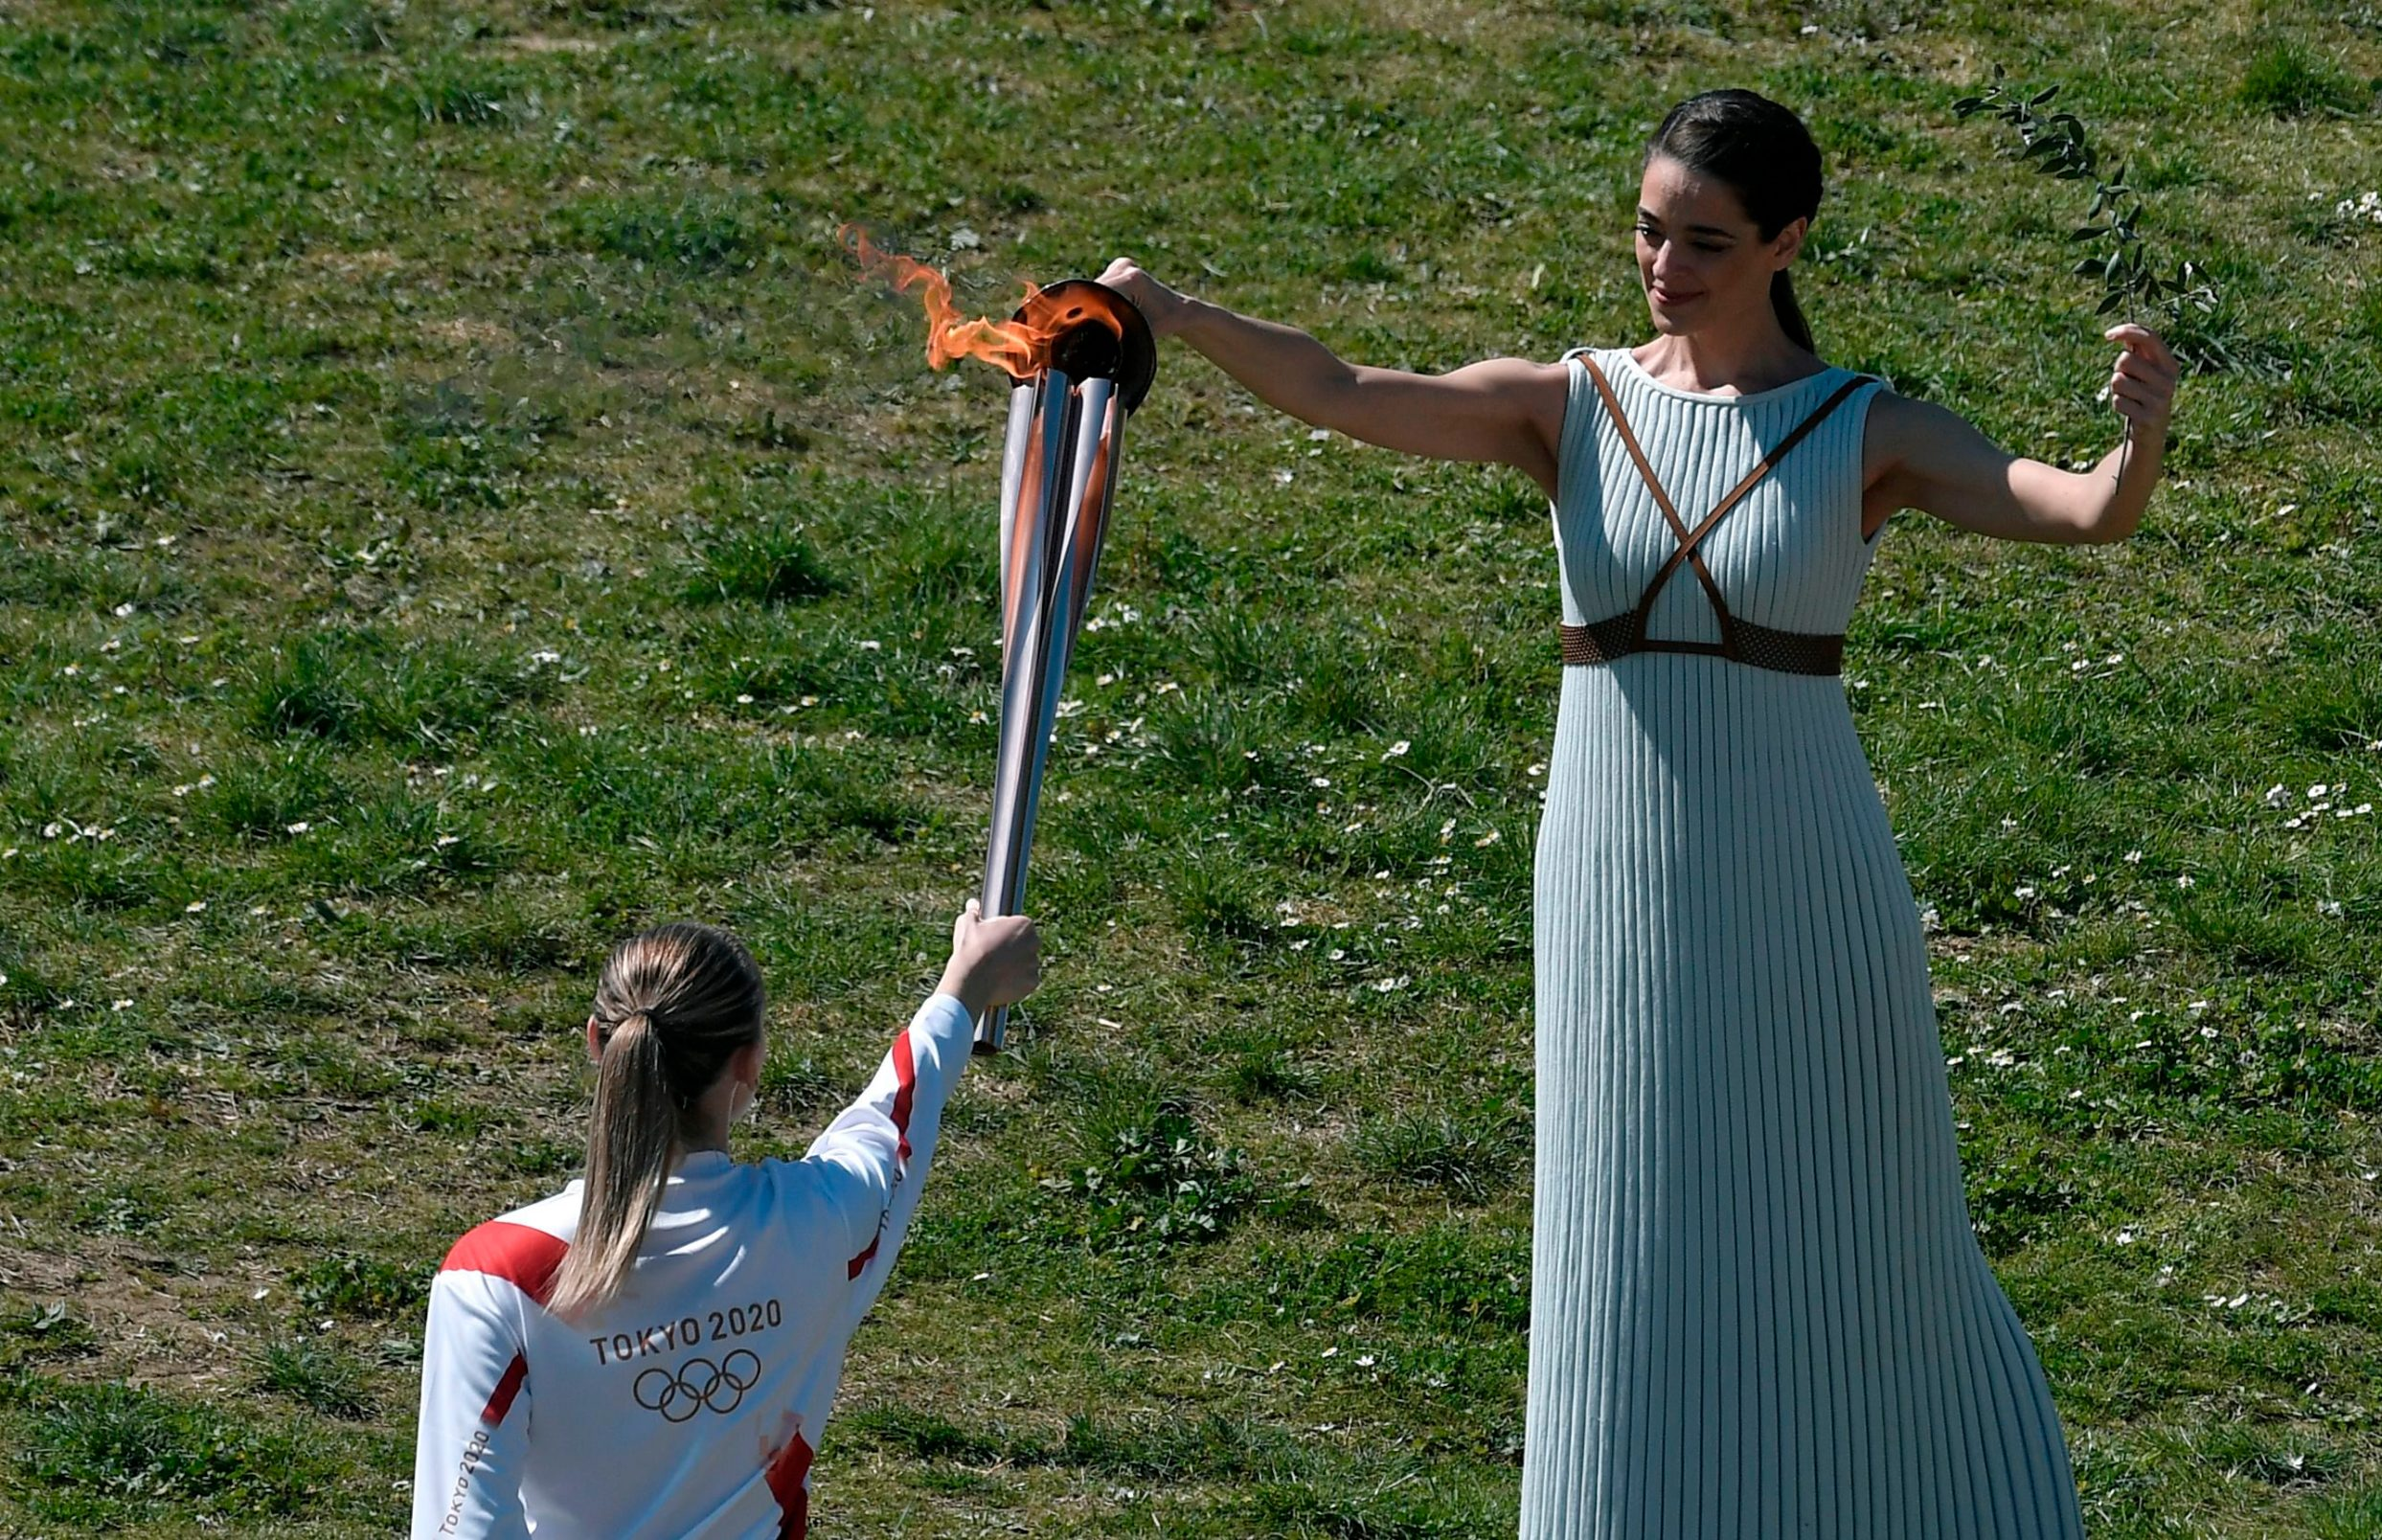 Torchbearer Greece's Anna Korakaki (back), Rio 2016 gold medallist in the 25m pistol shooting, receives the Olympic flame during the flame lighting ceremony on March 12, 2020 in ancient Olympia, ahead of the Tokyo 2020 Olympic Games. (Photo by LOUISA GOULIAMAKI / AFP)